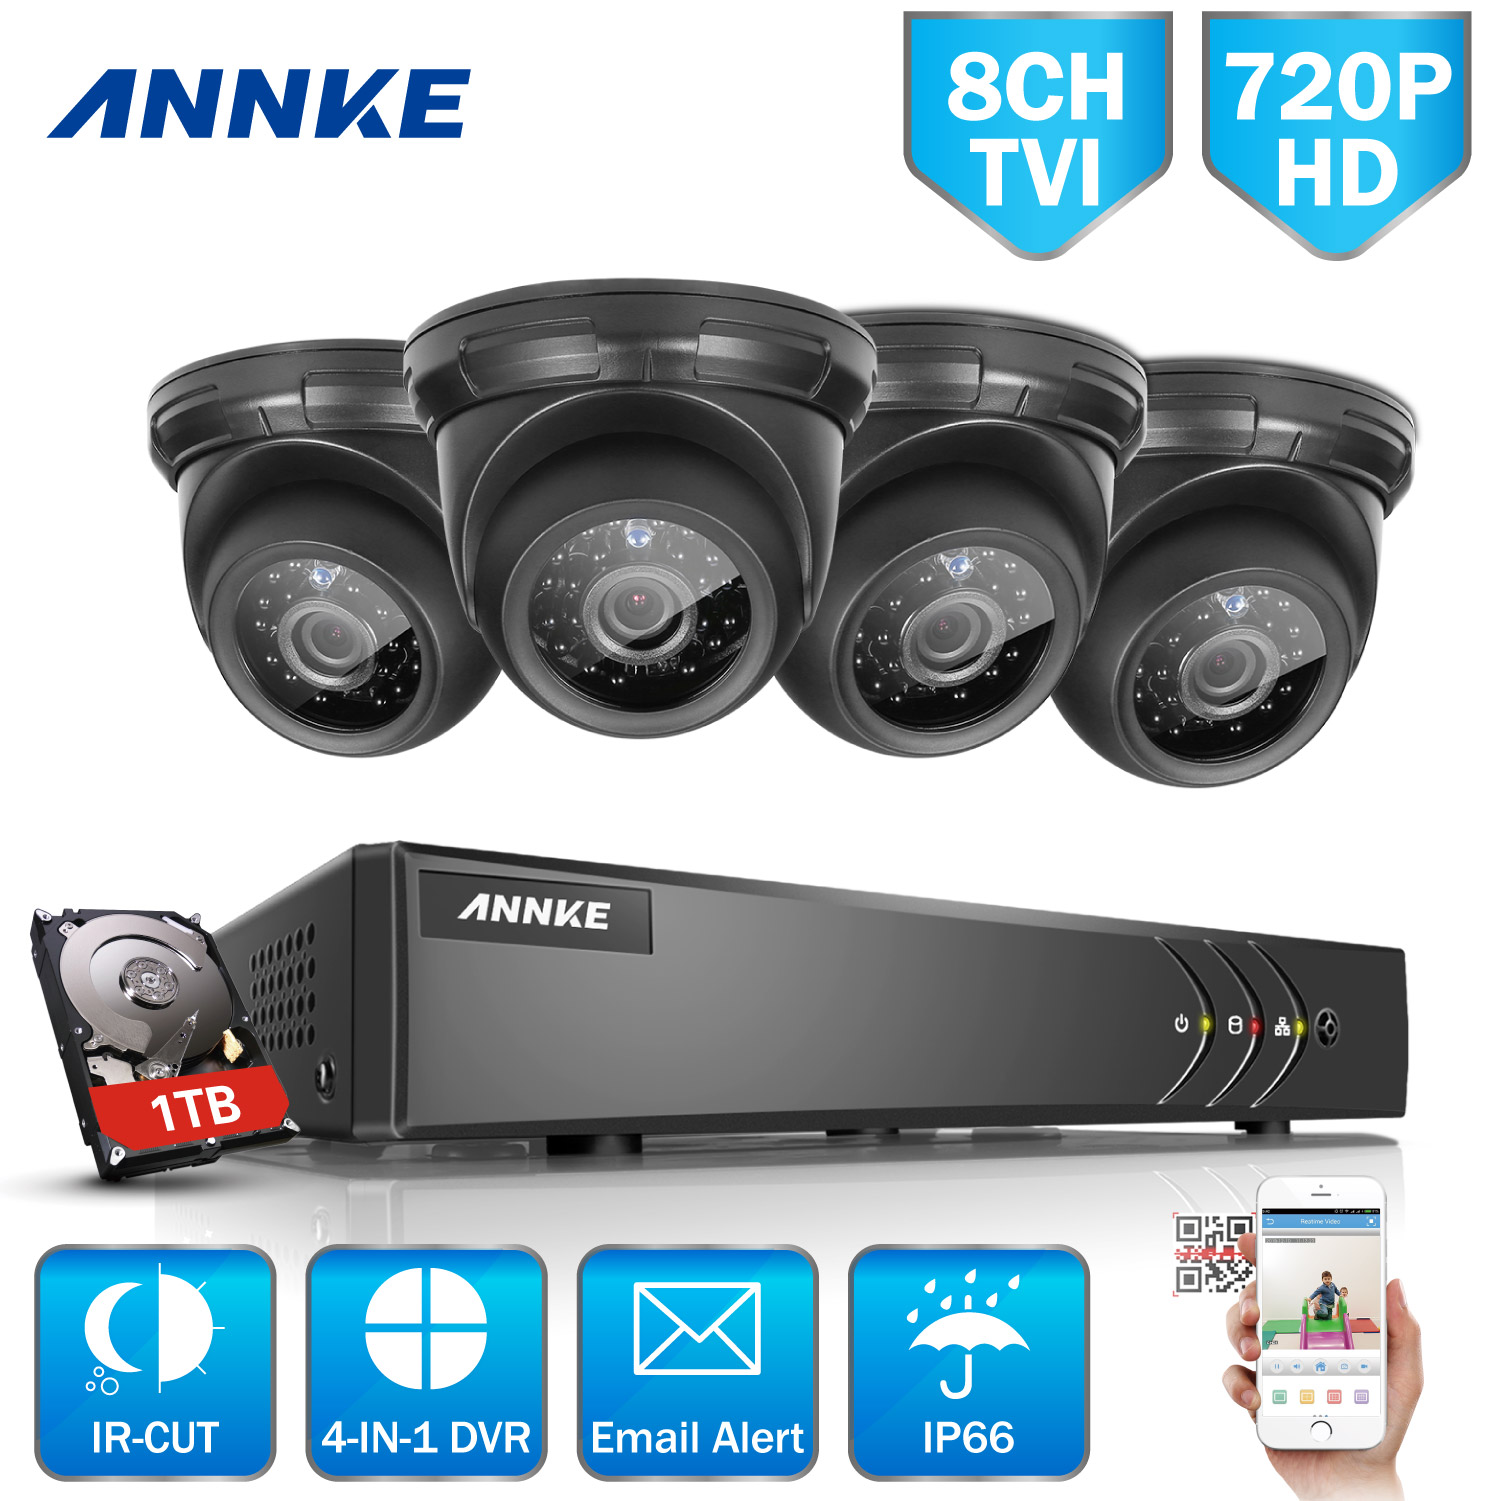 ANNKE 8CH Security 720p HD-TVI DVR Recorde System and 4Pcs 1.0MP Weatherproof Outdoor Security Cameras-White& NO Hard Drive Disk